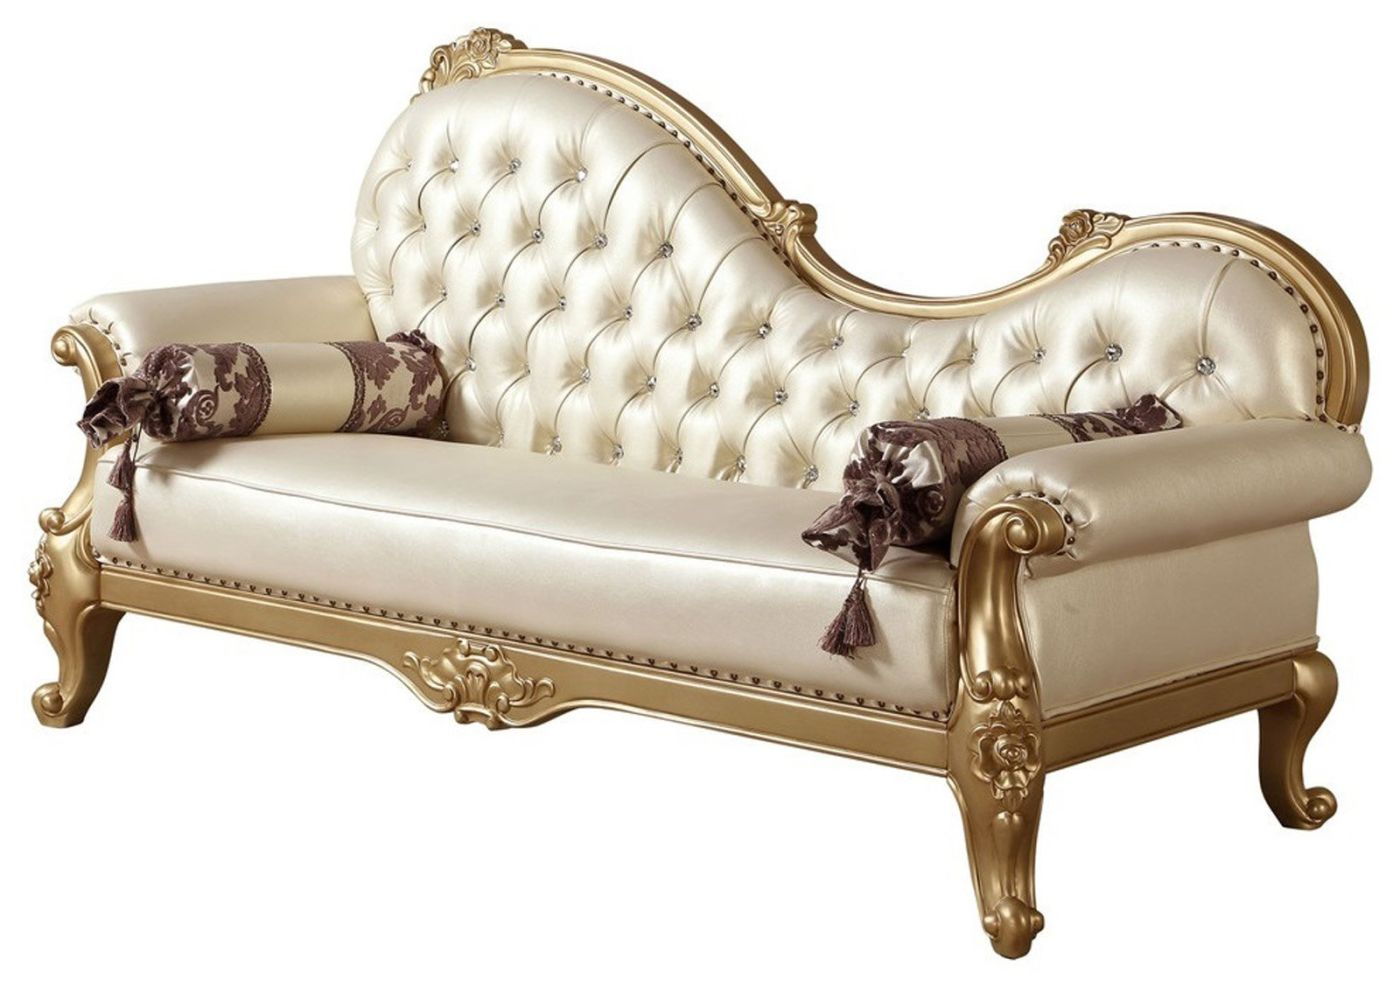 armchairs longue antique french inessa walnut country bergere chaise